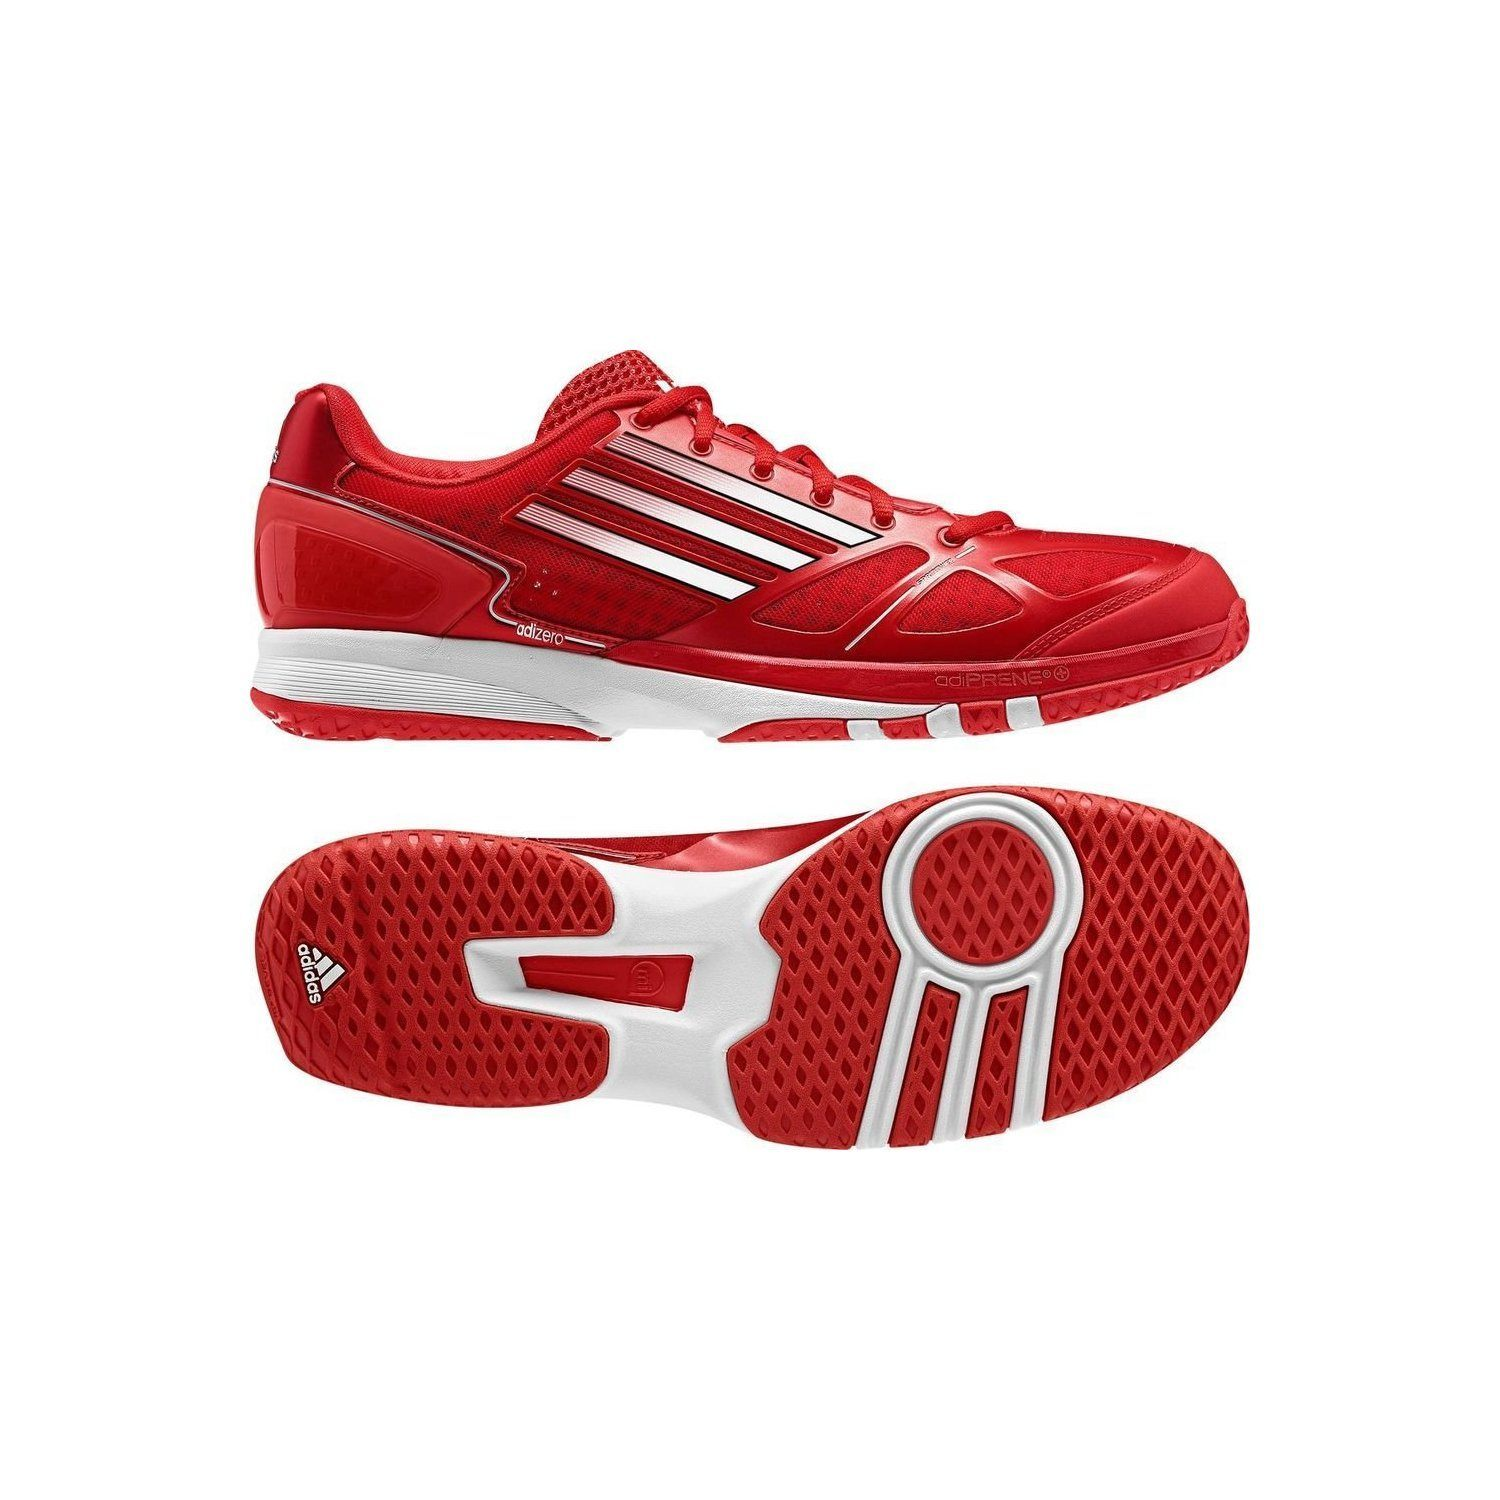 adidas-adizero-prime-shoes-red-